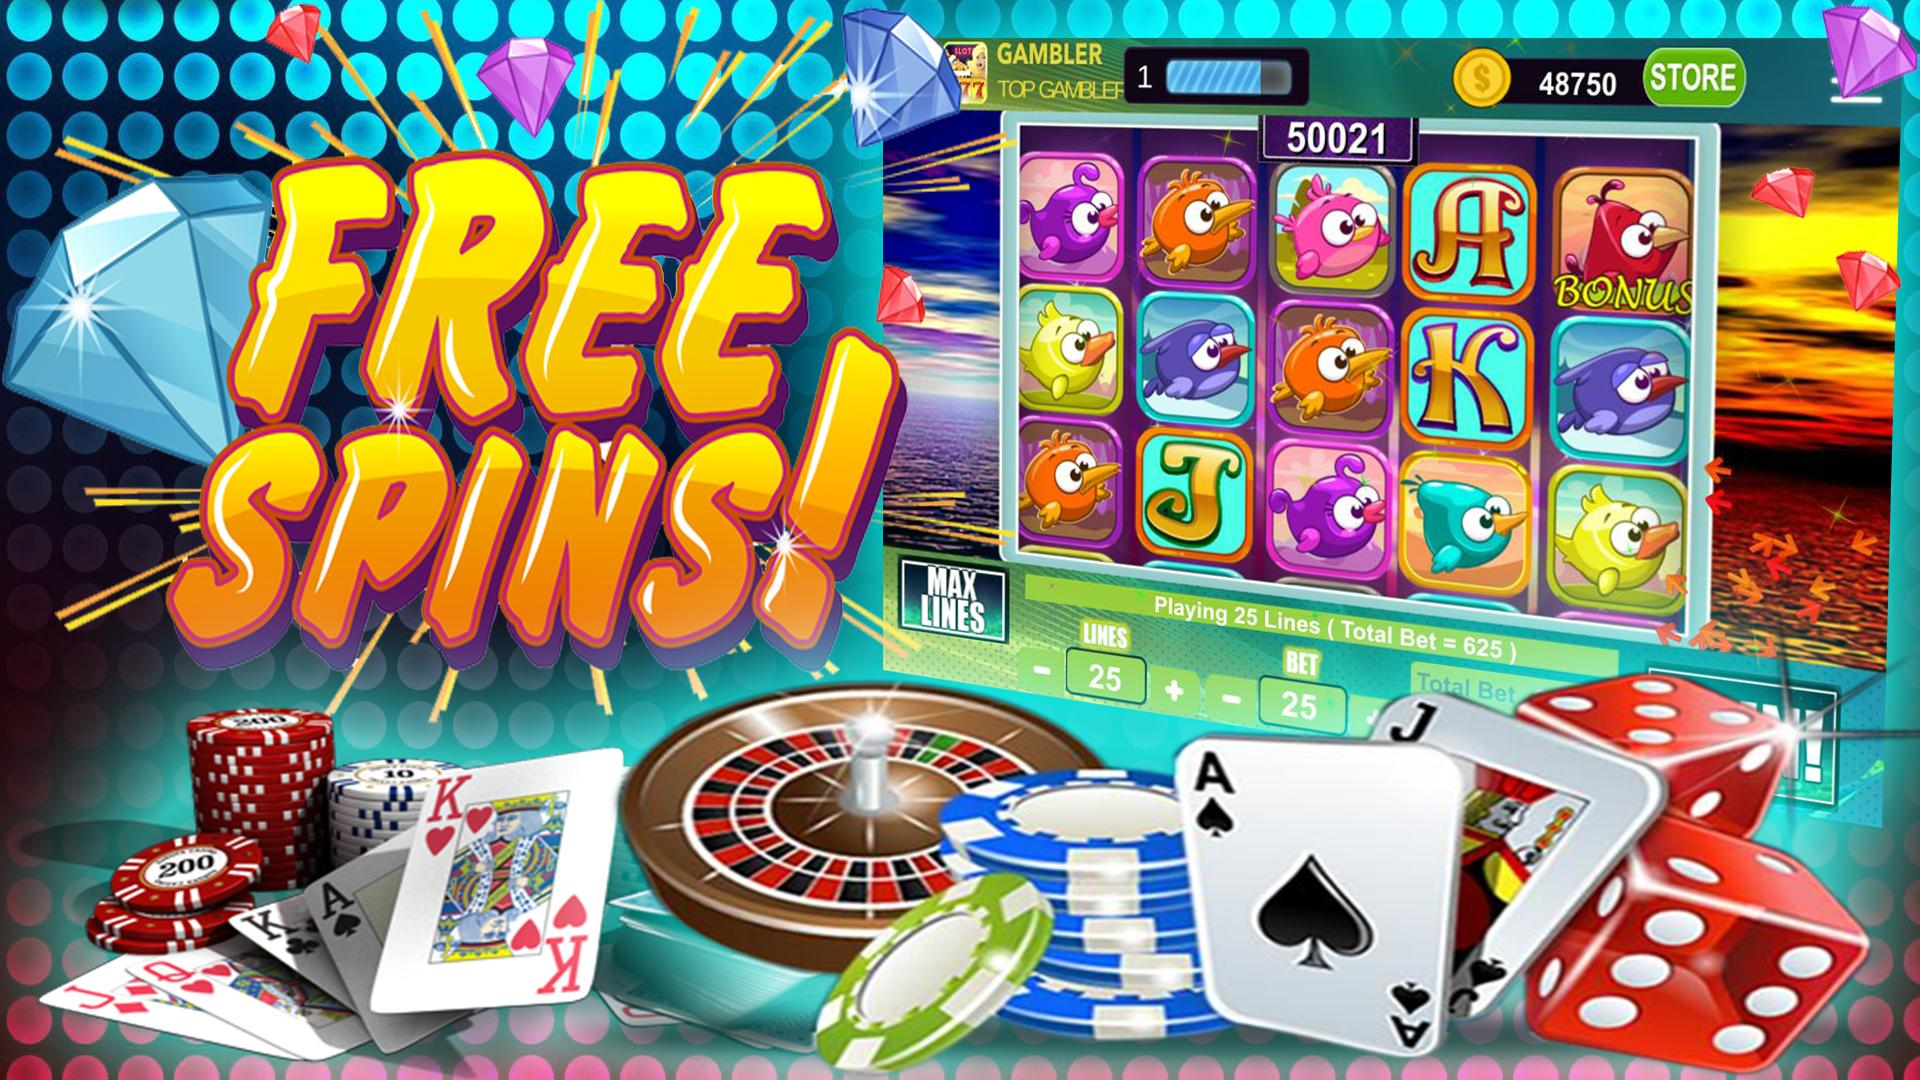 Hollywood Jackpot Slots - Birds Slot Casino Game for Android - APK Download